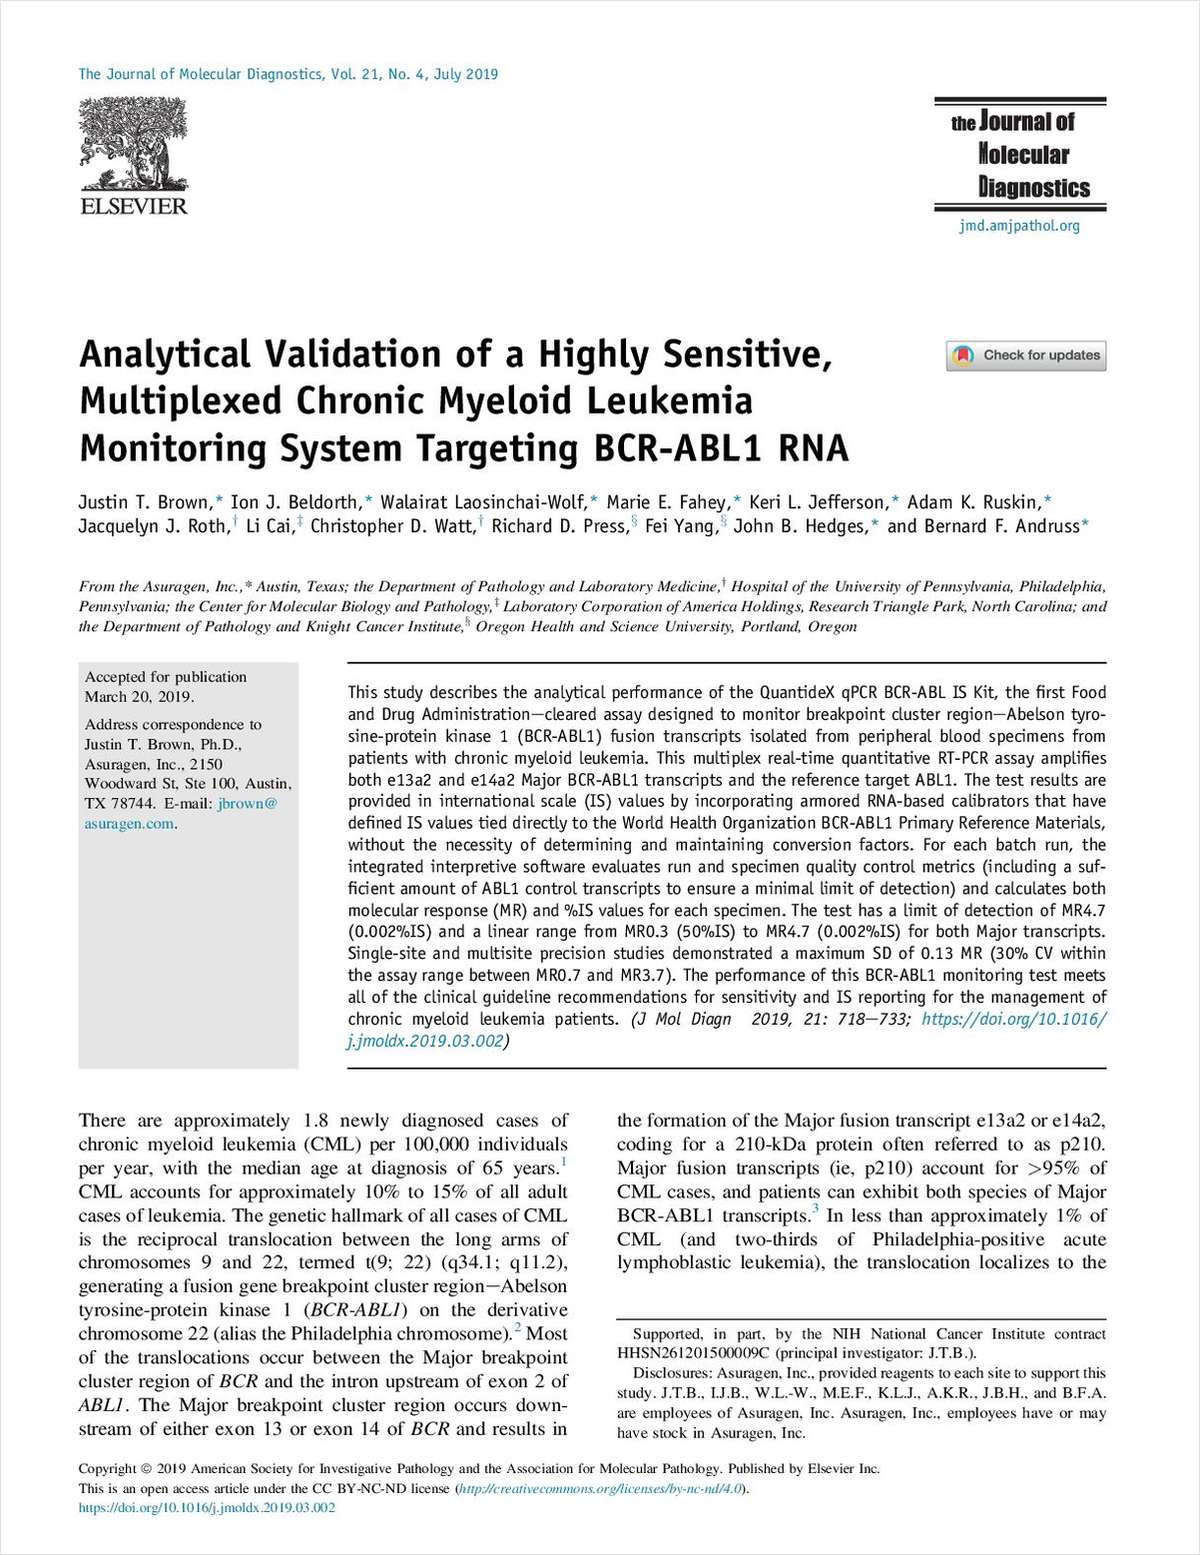 Analytical Validation of a Highly Sensitive, Multiplexed Chronic Myeloid Leukemia Monitoring System Targeting BCR-ABL1 RNA